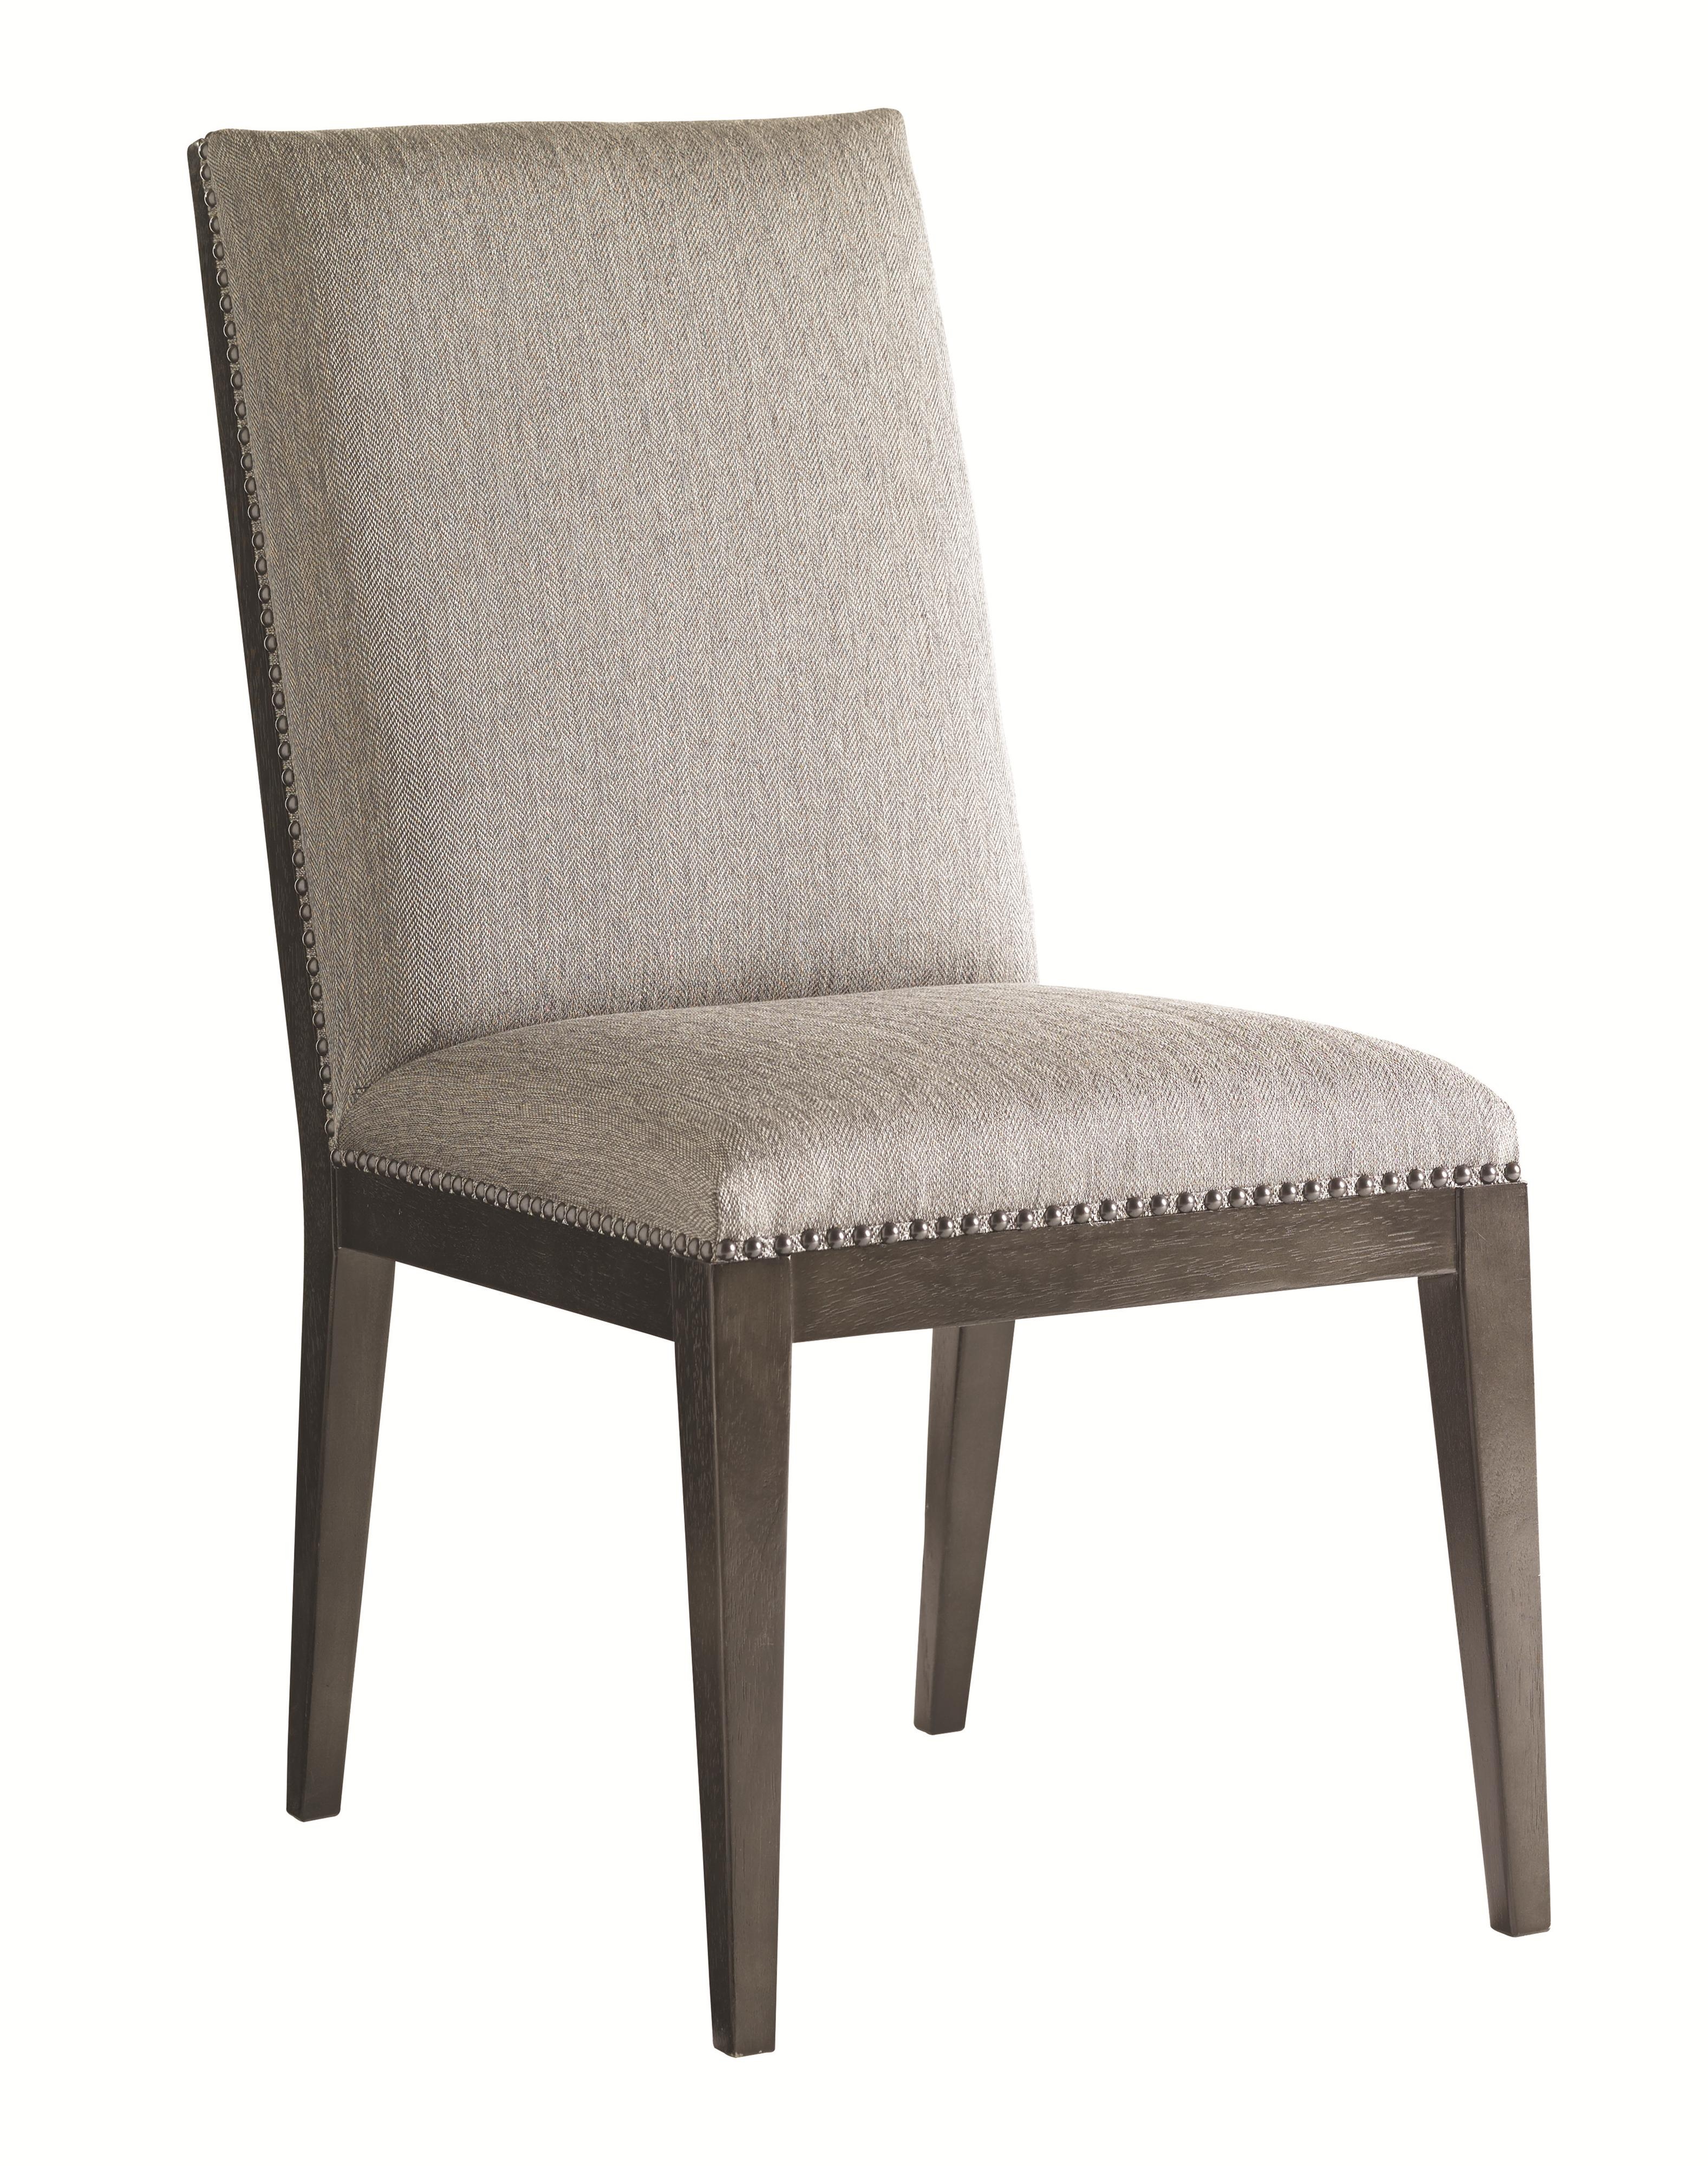 Carrera Vantage Upholstered Side Chair by Lexington at Jacksonville Furniture Mart